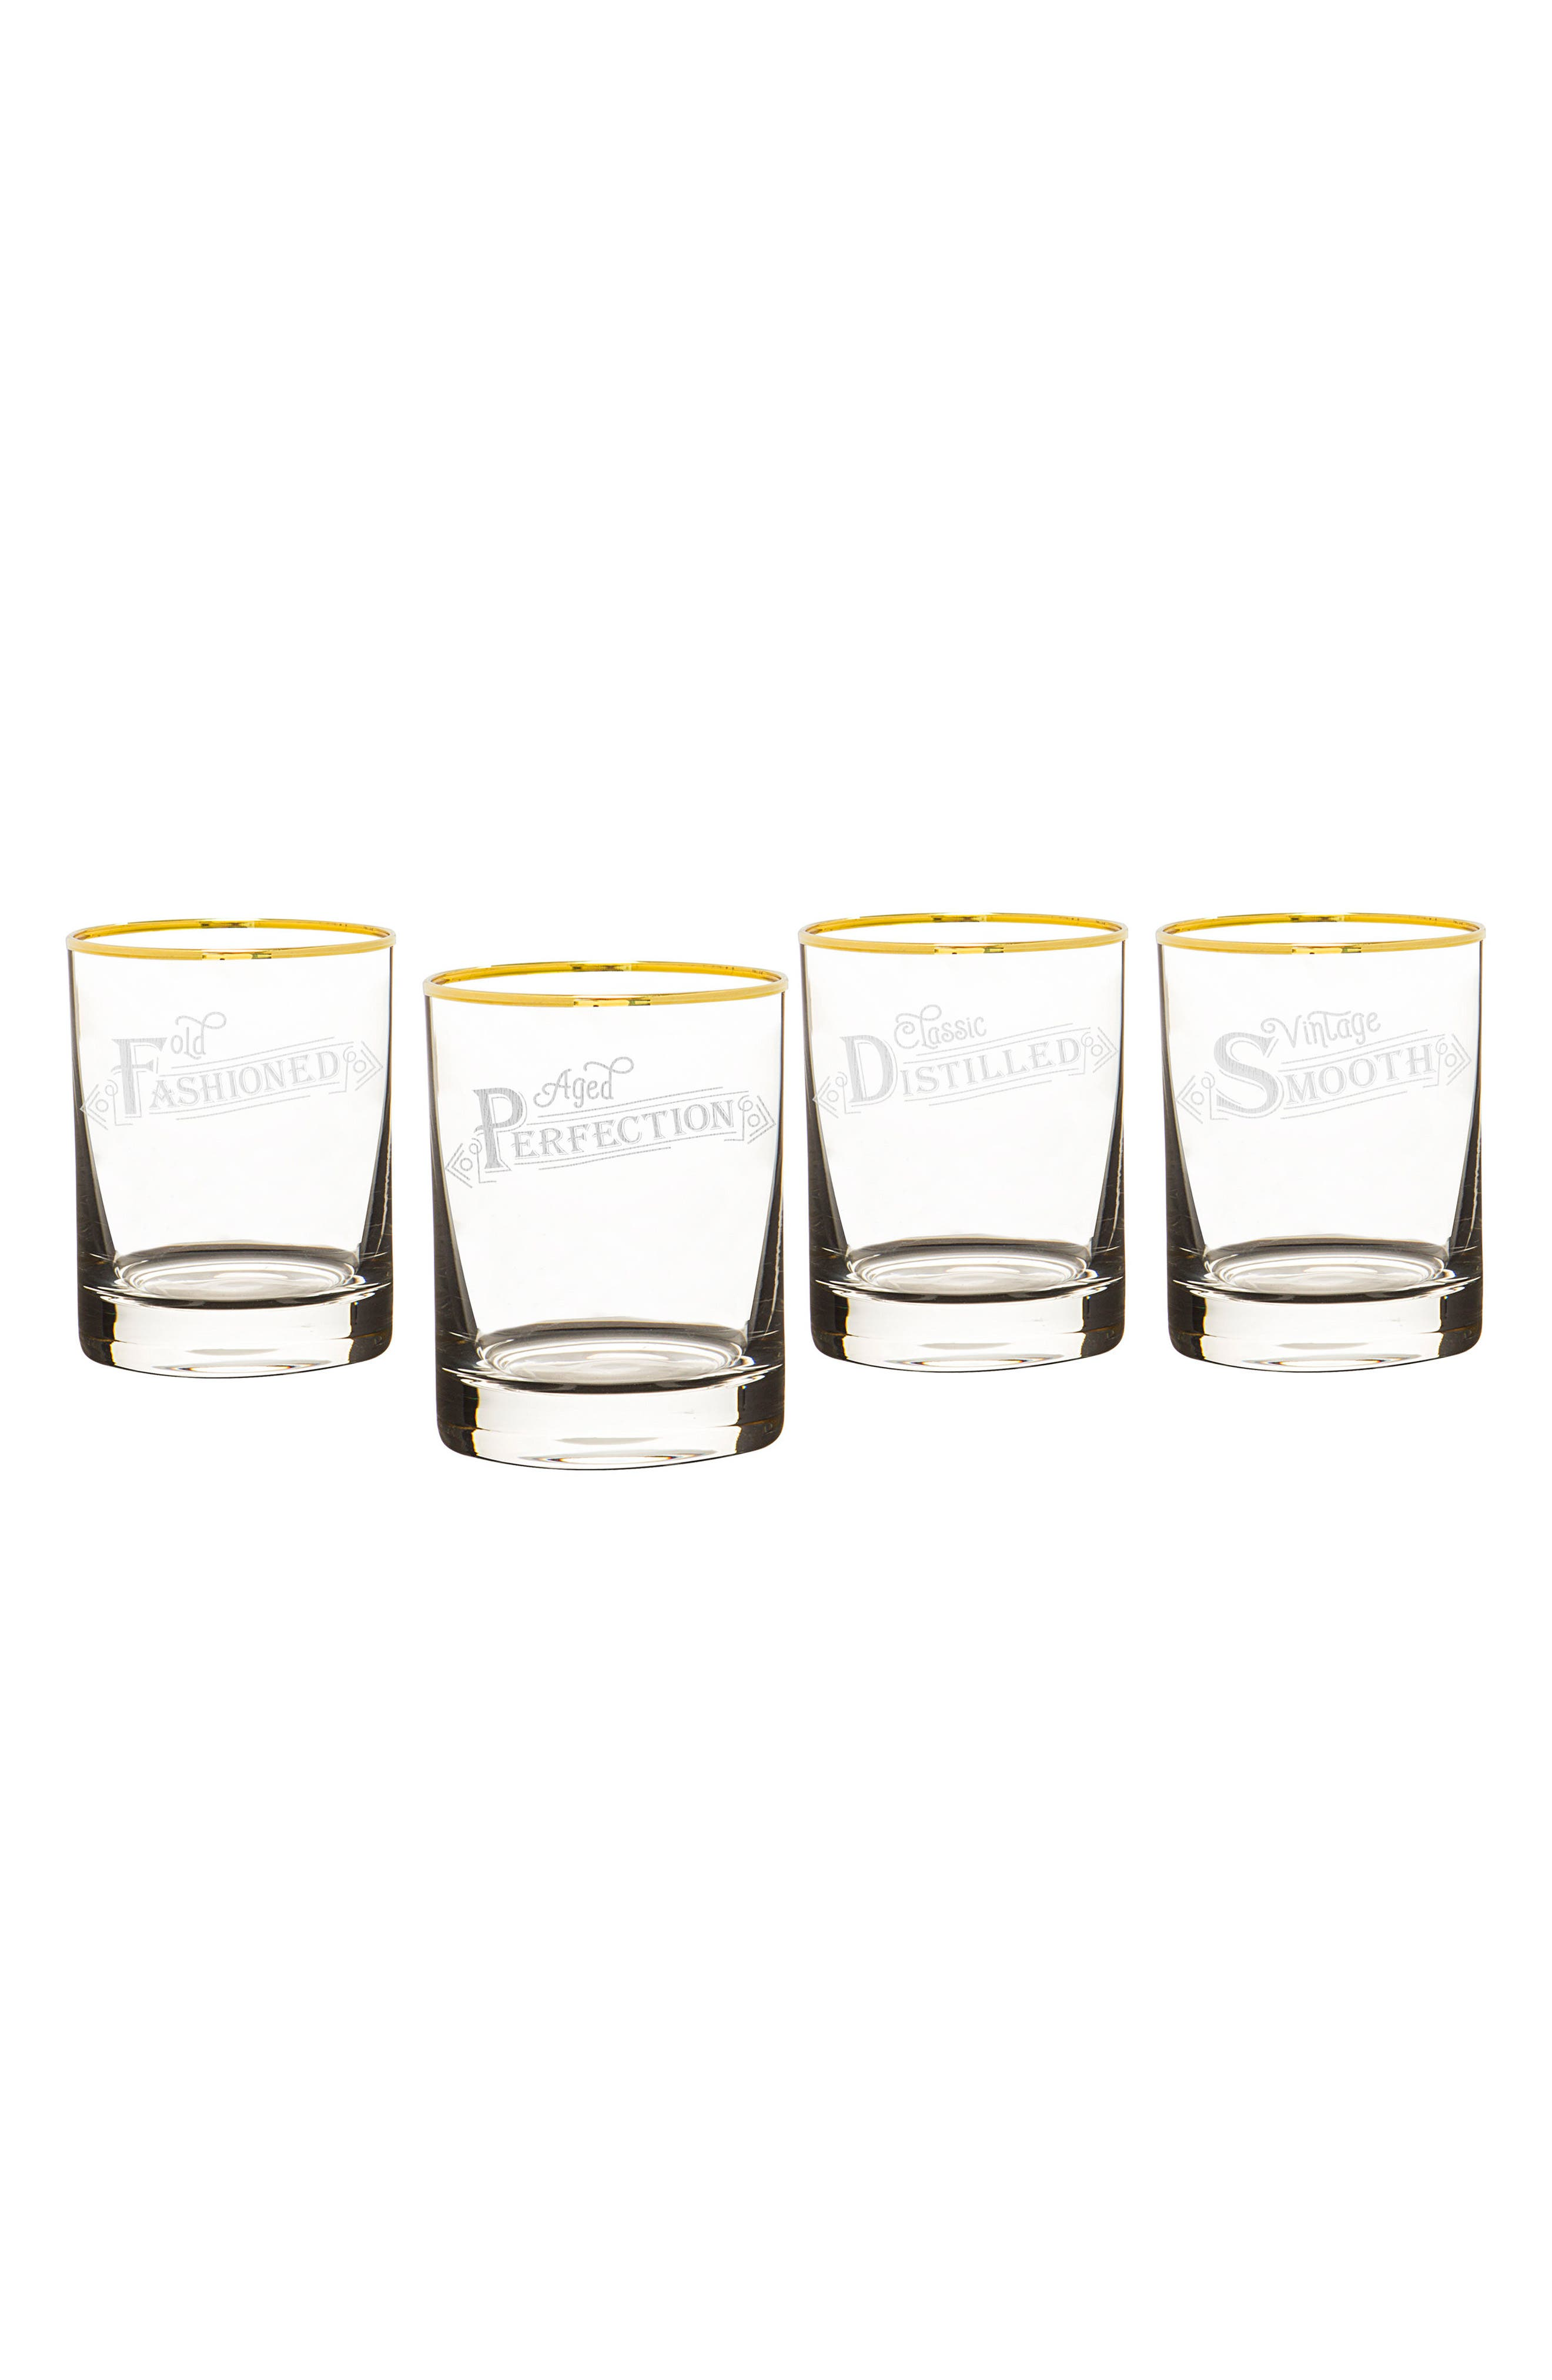 Cathy's Concepts Set of 4 Gold Rim Old Fashioned Whiskey Glasses